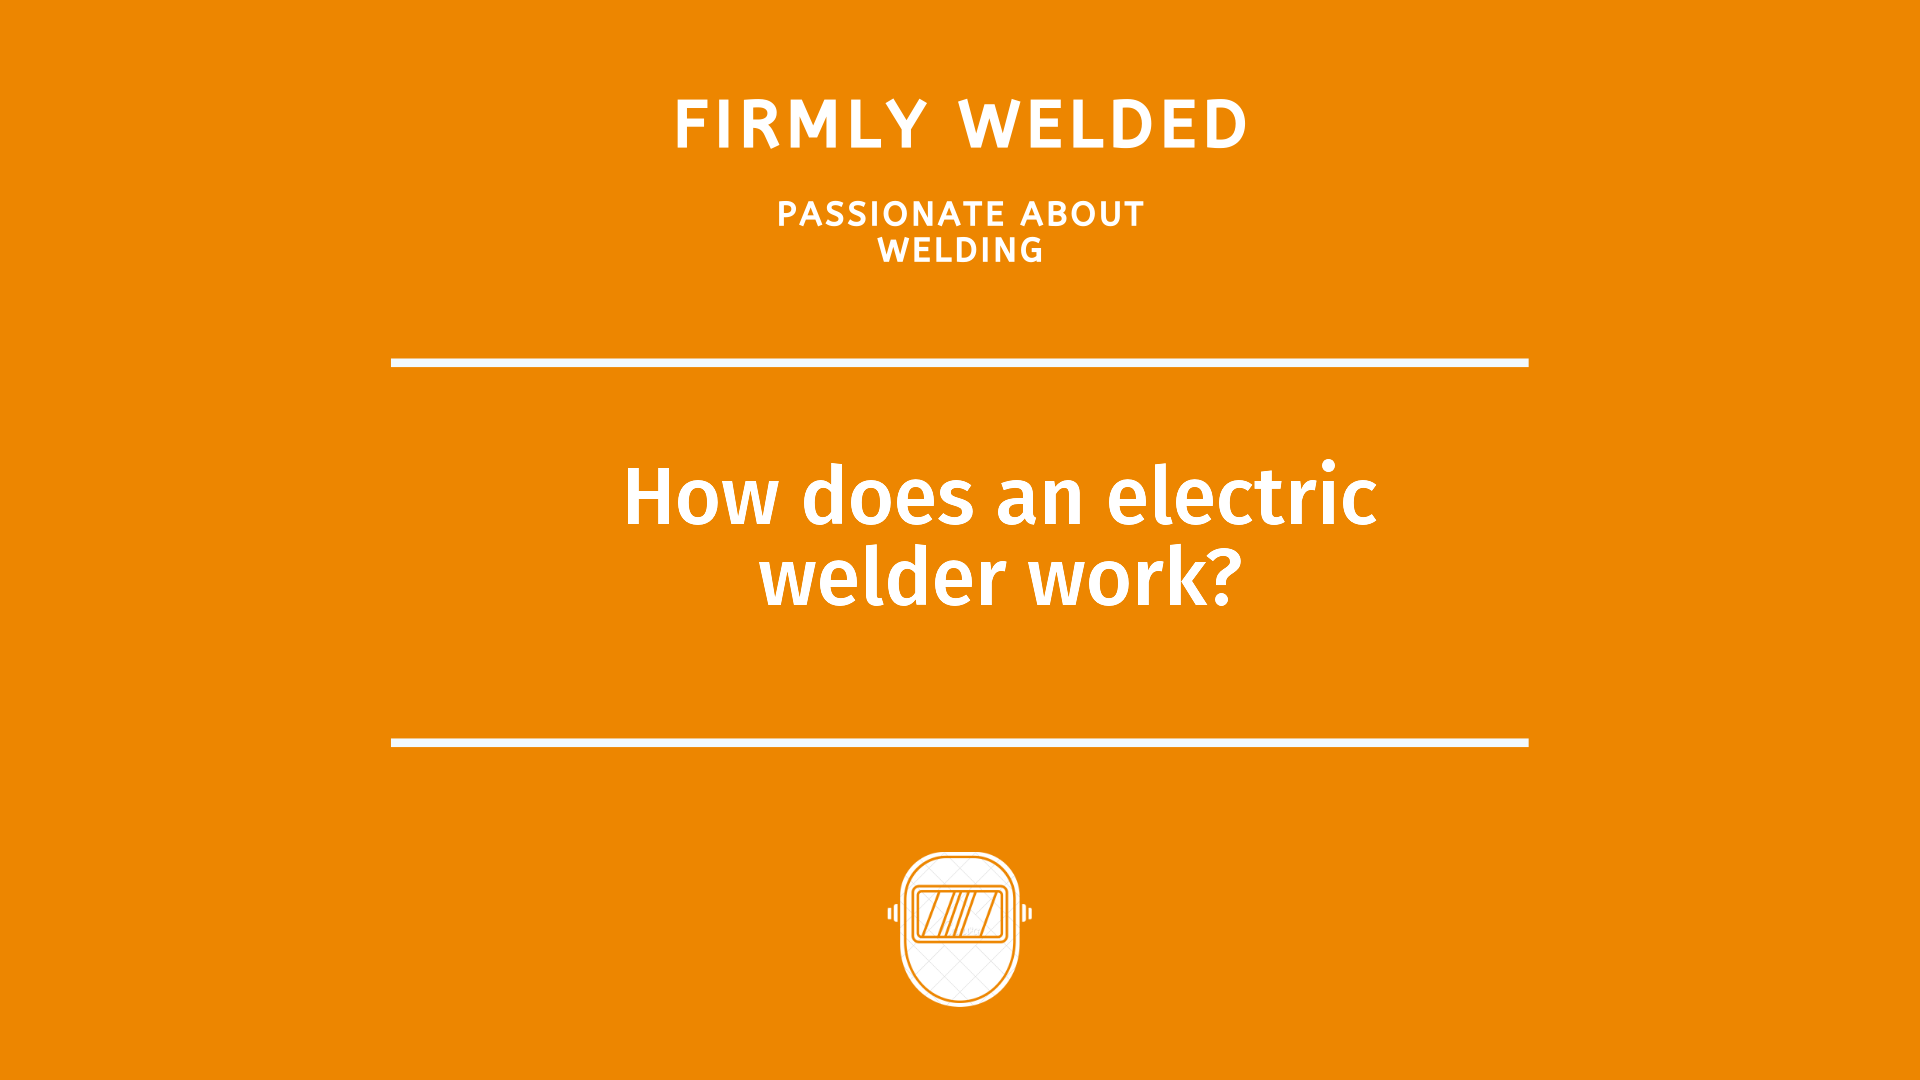 How does an electric welder work?